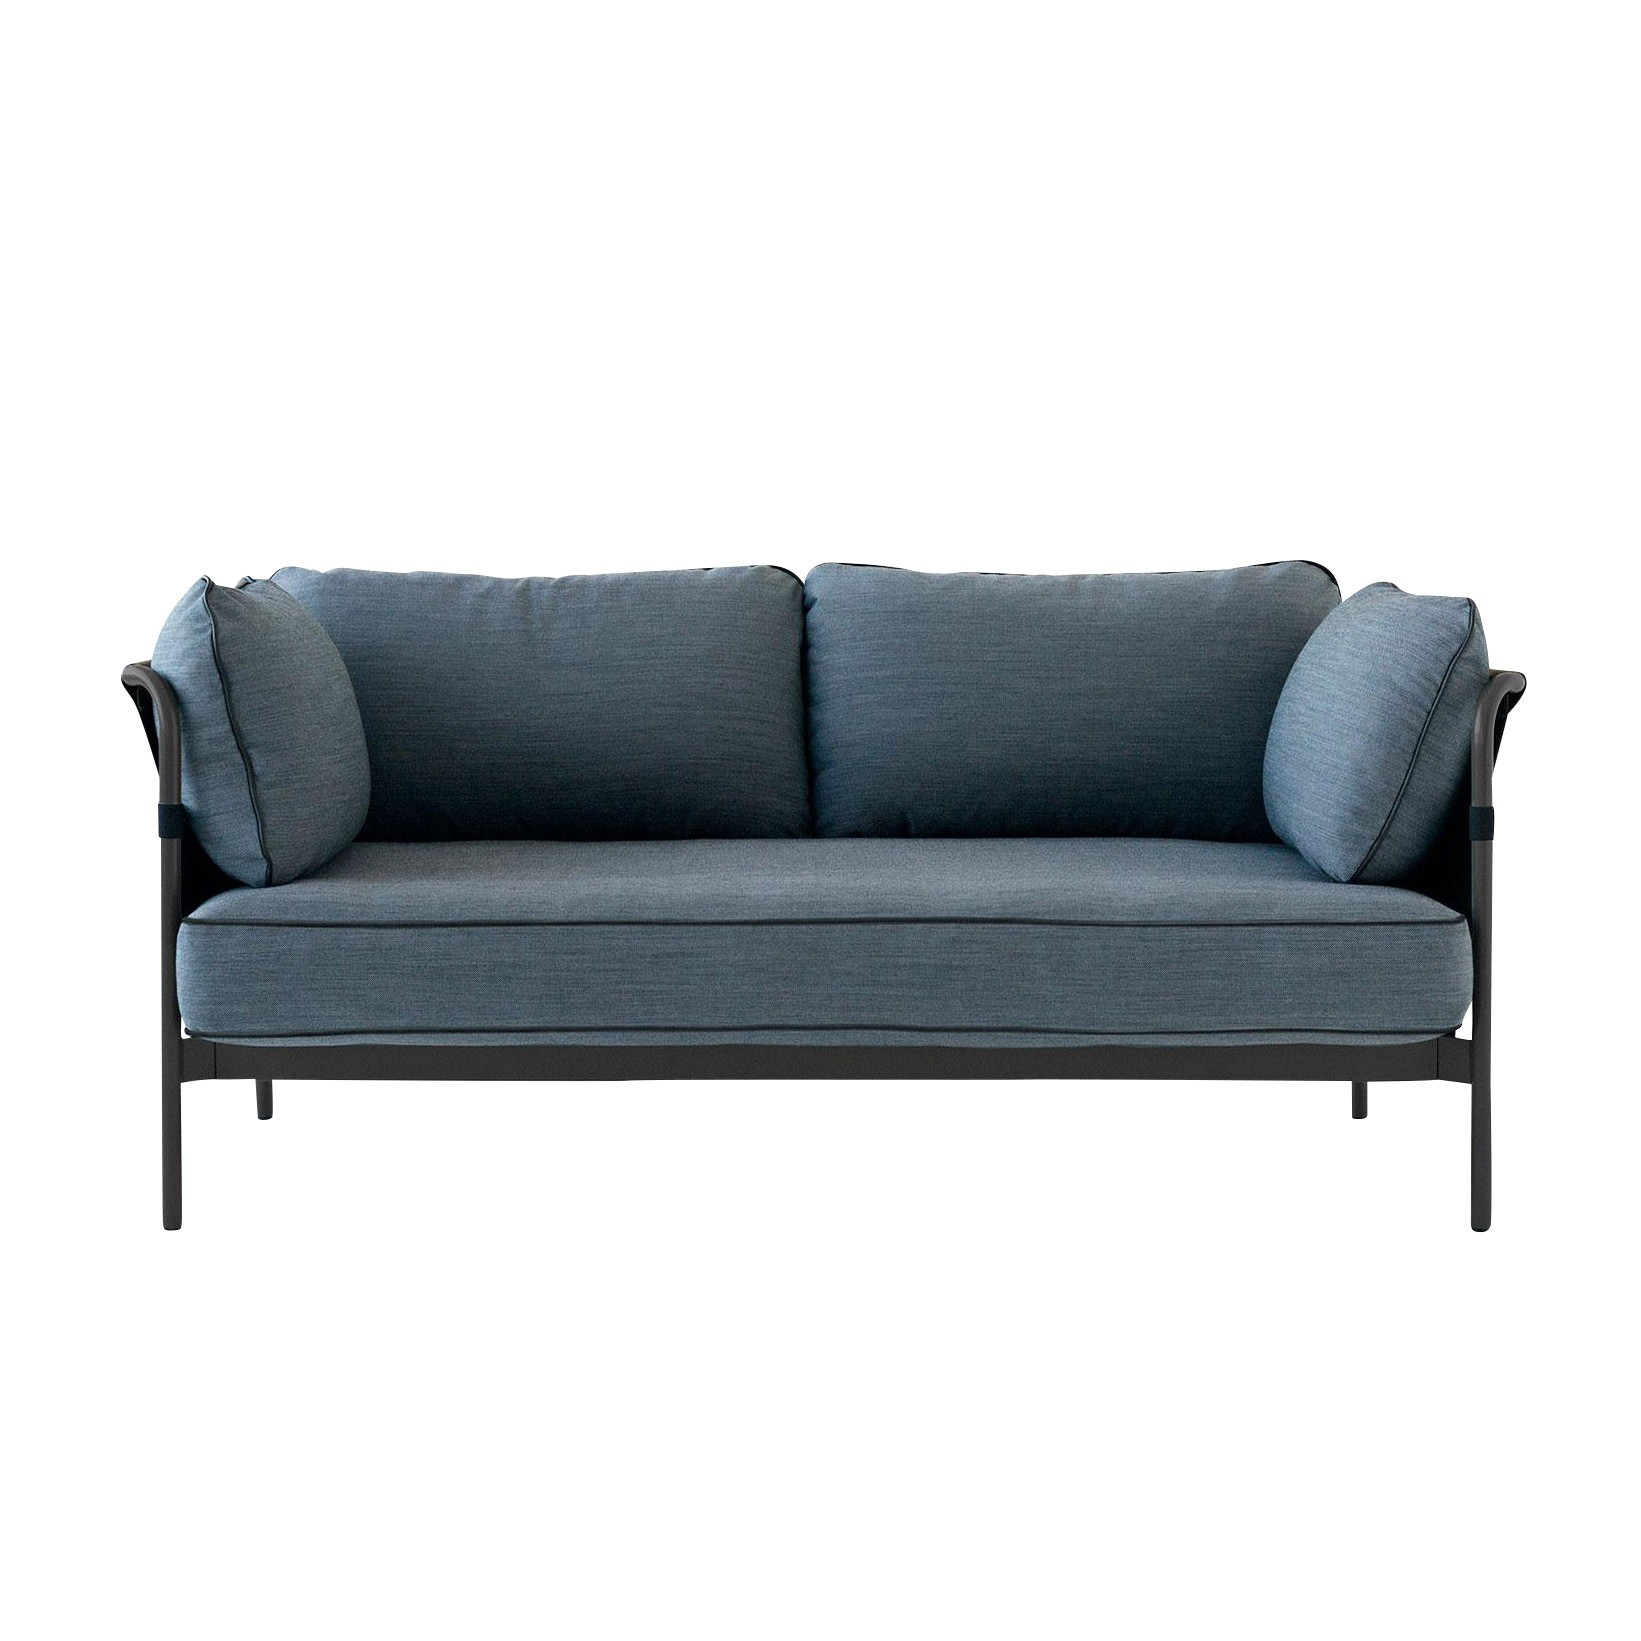 Hay Can 2 Seater Sofa Frame Black